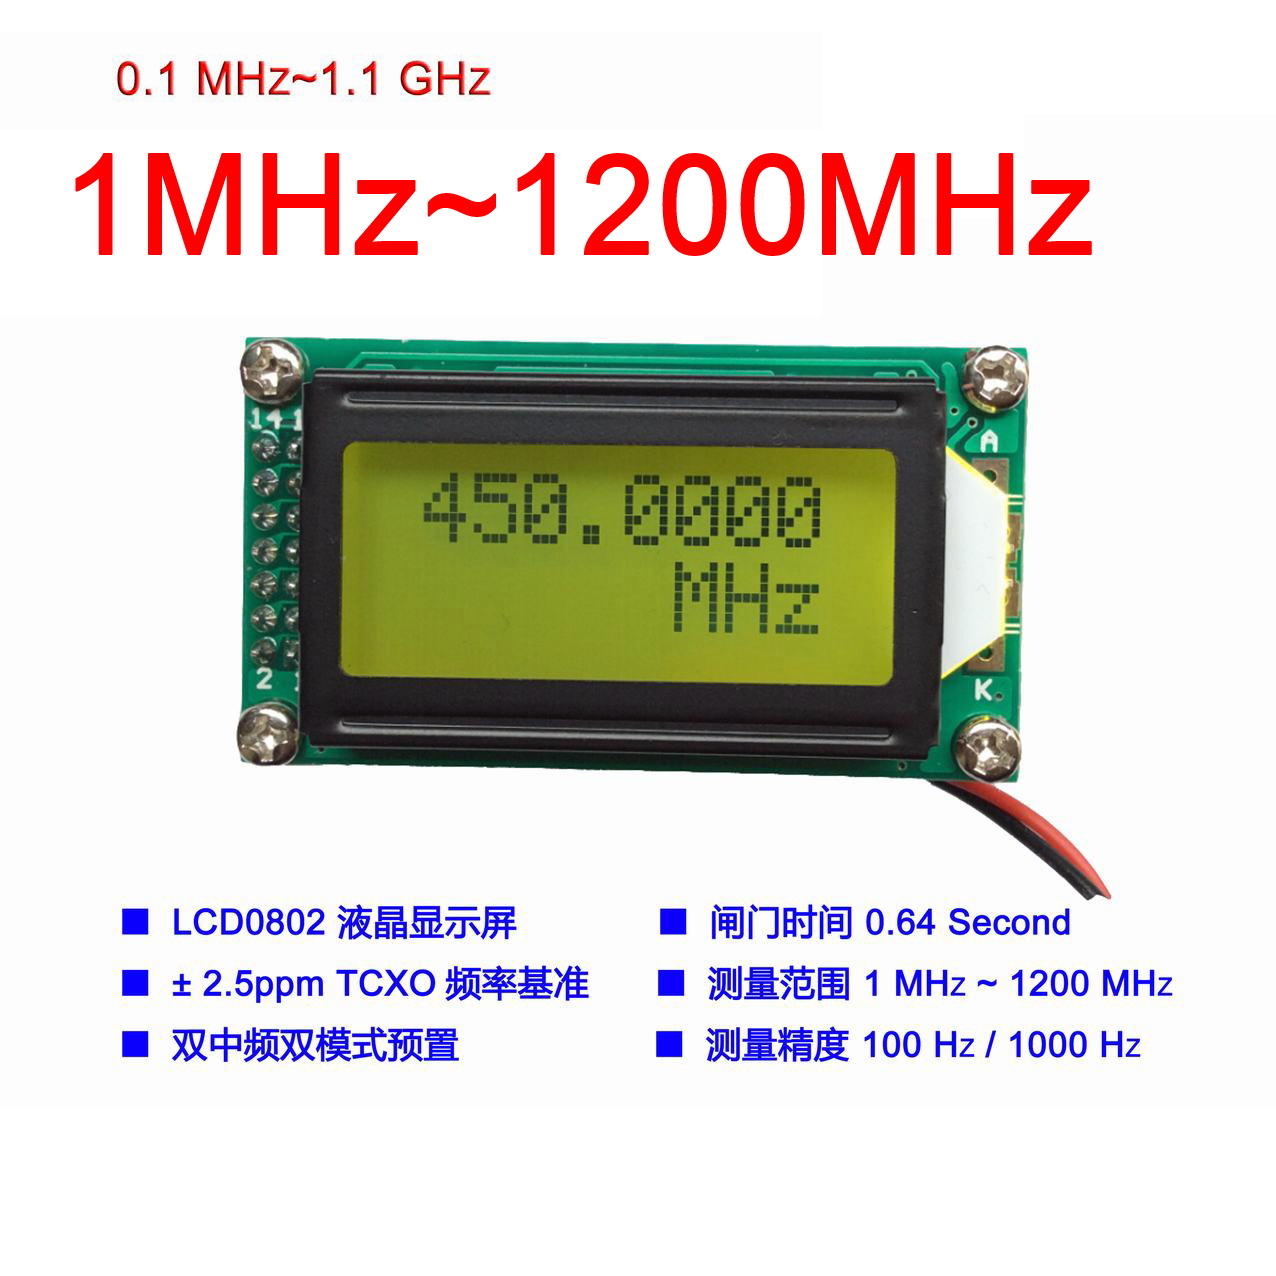 digital frequency counter block diagram how to lewis dot 1mhz 1200mhz 1 2 ghz rf tester